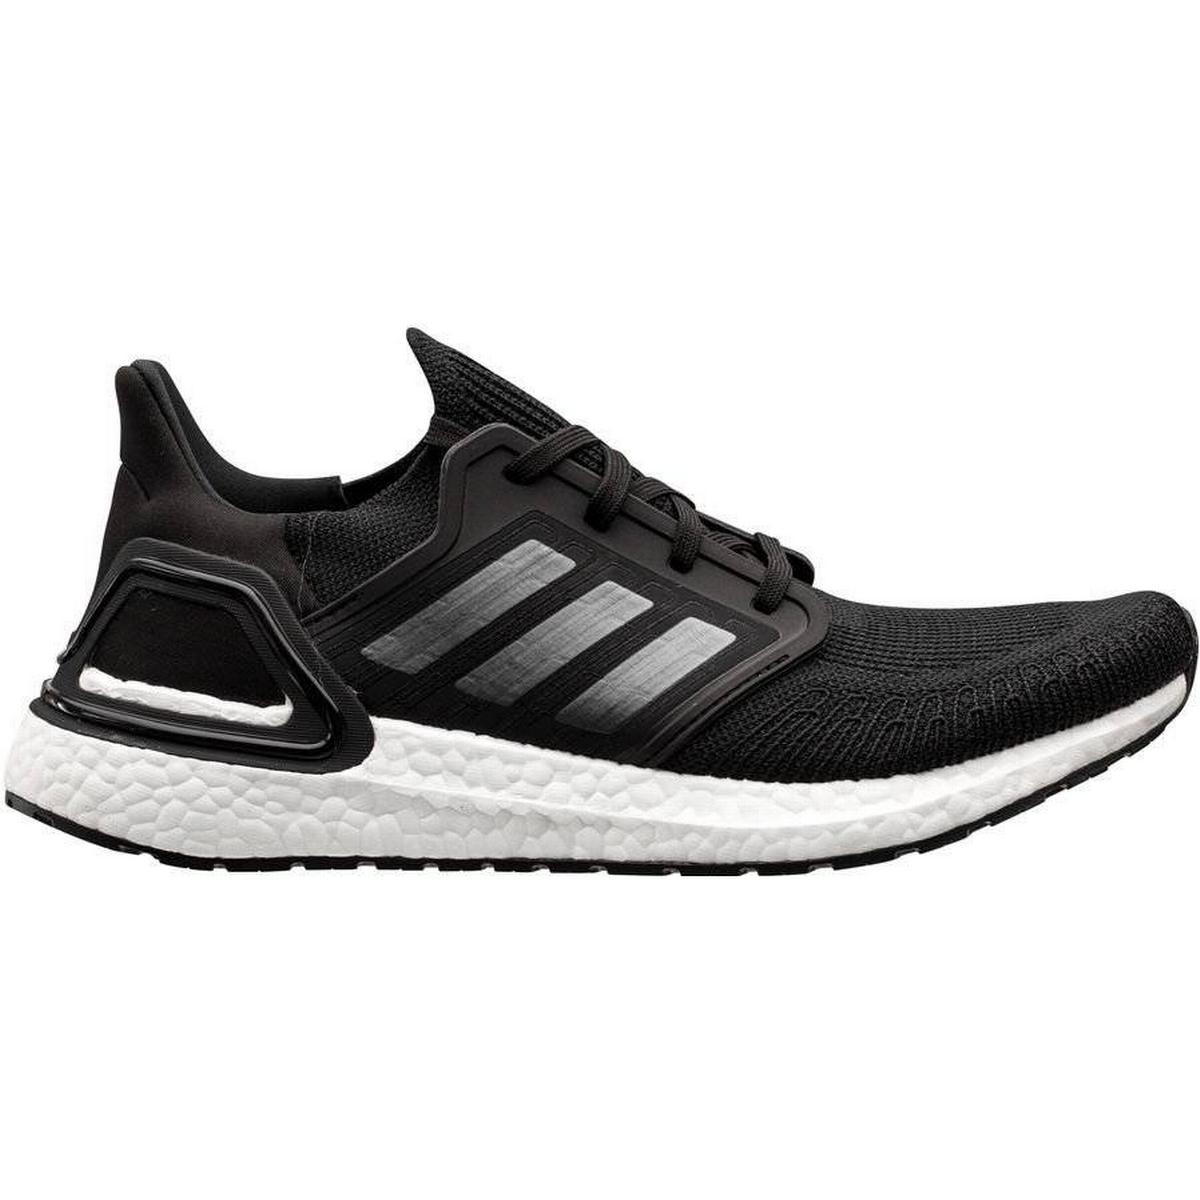 Adidas Running Shoes (1000+ products